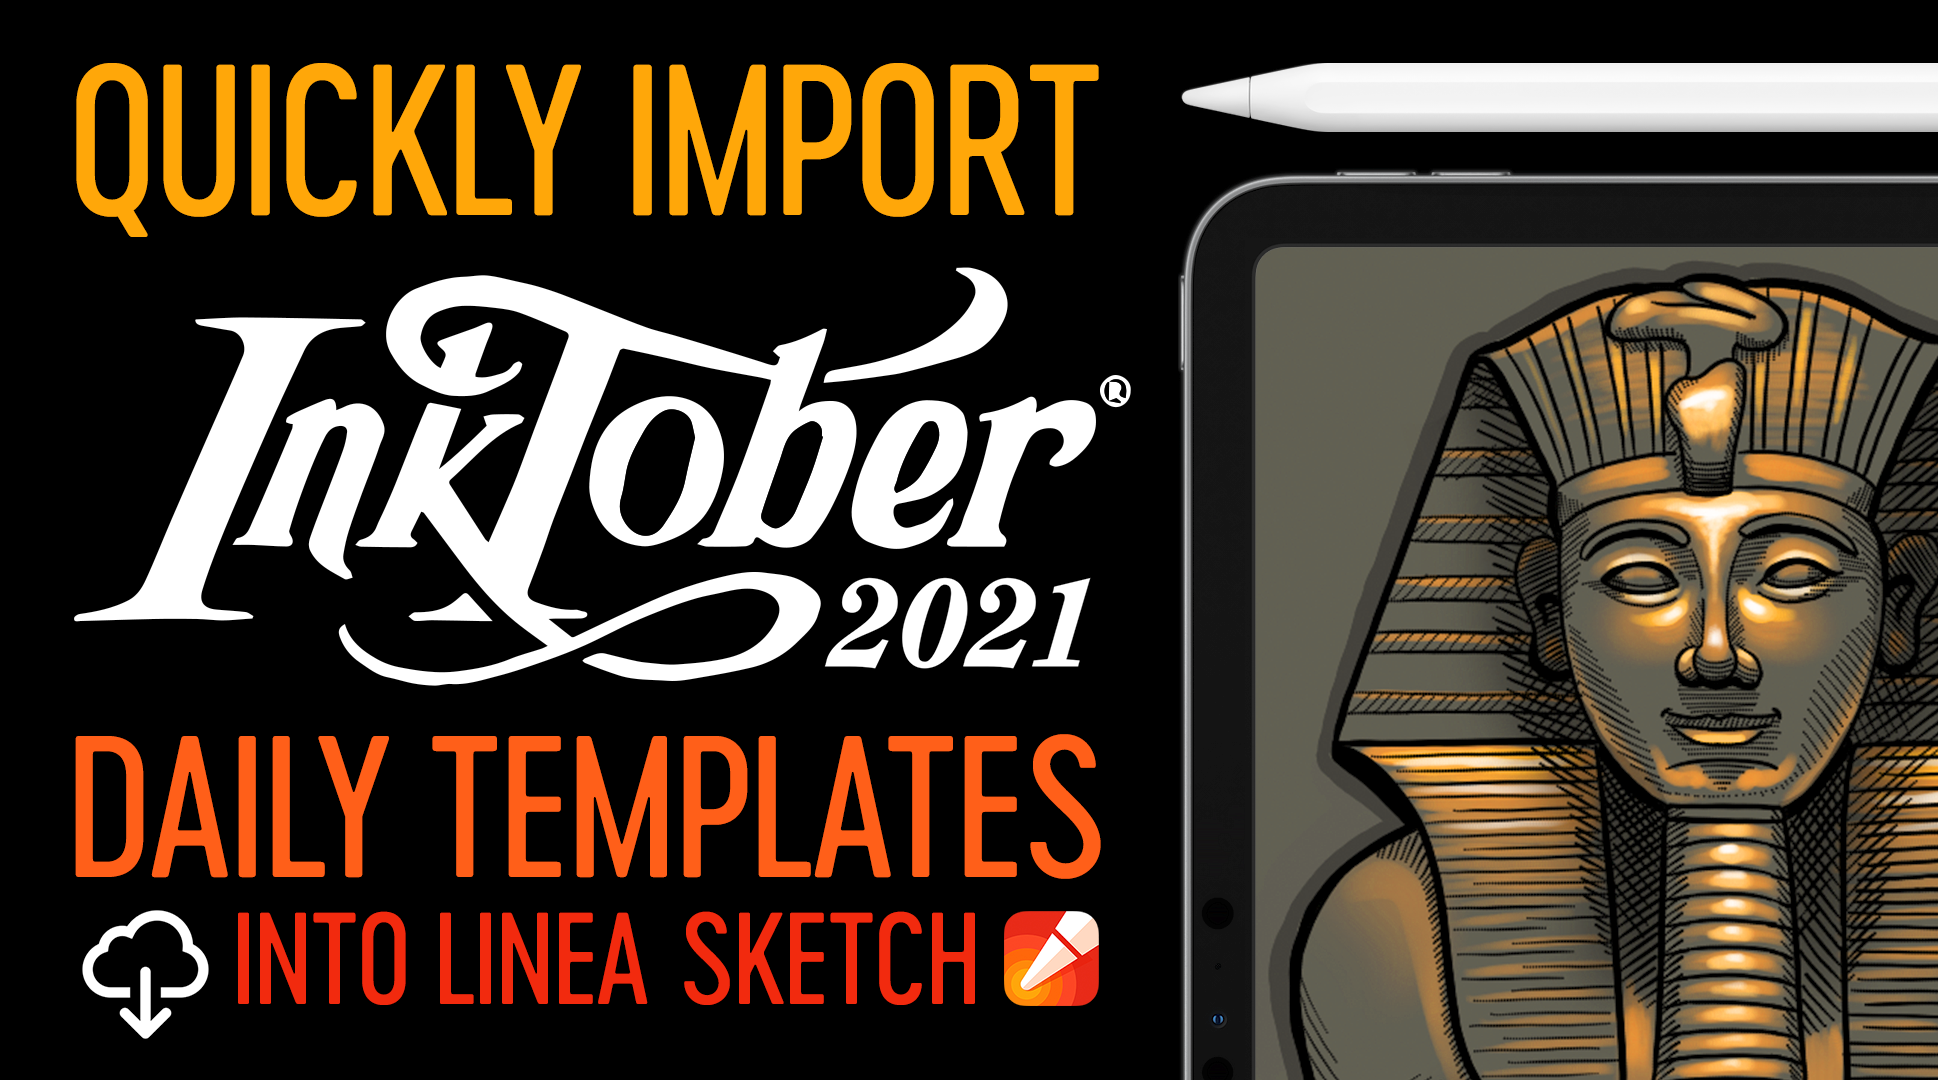 """Header banner with the title """"Quickly Import Inktober 2021 Daily Templates Into Linea Sketch (via iCloud)"""